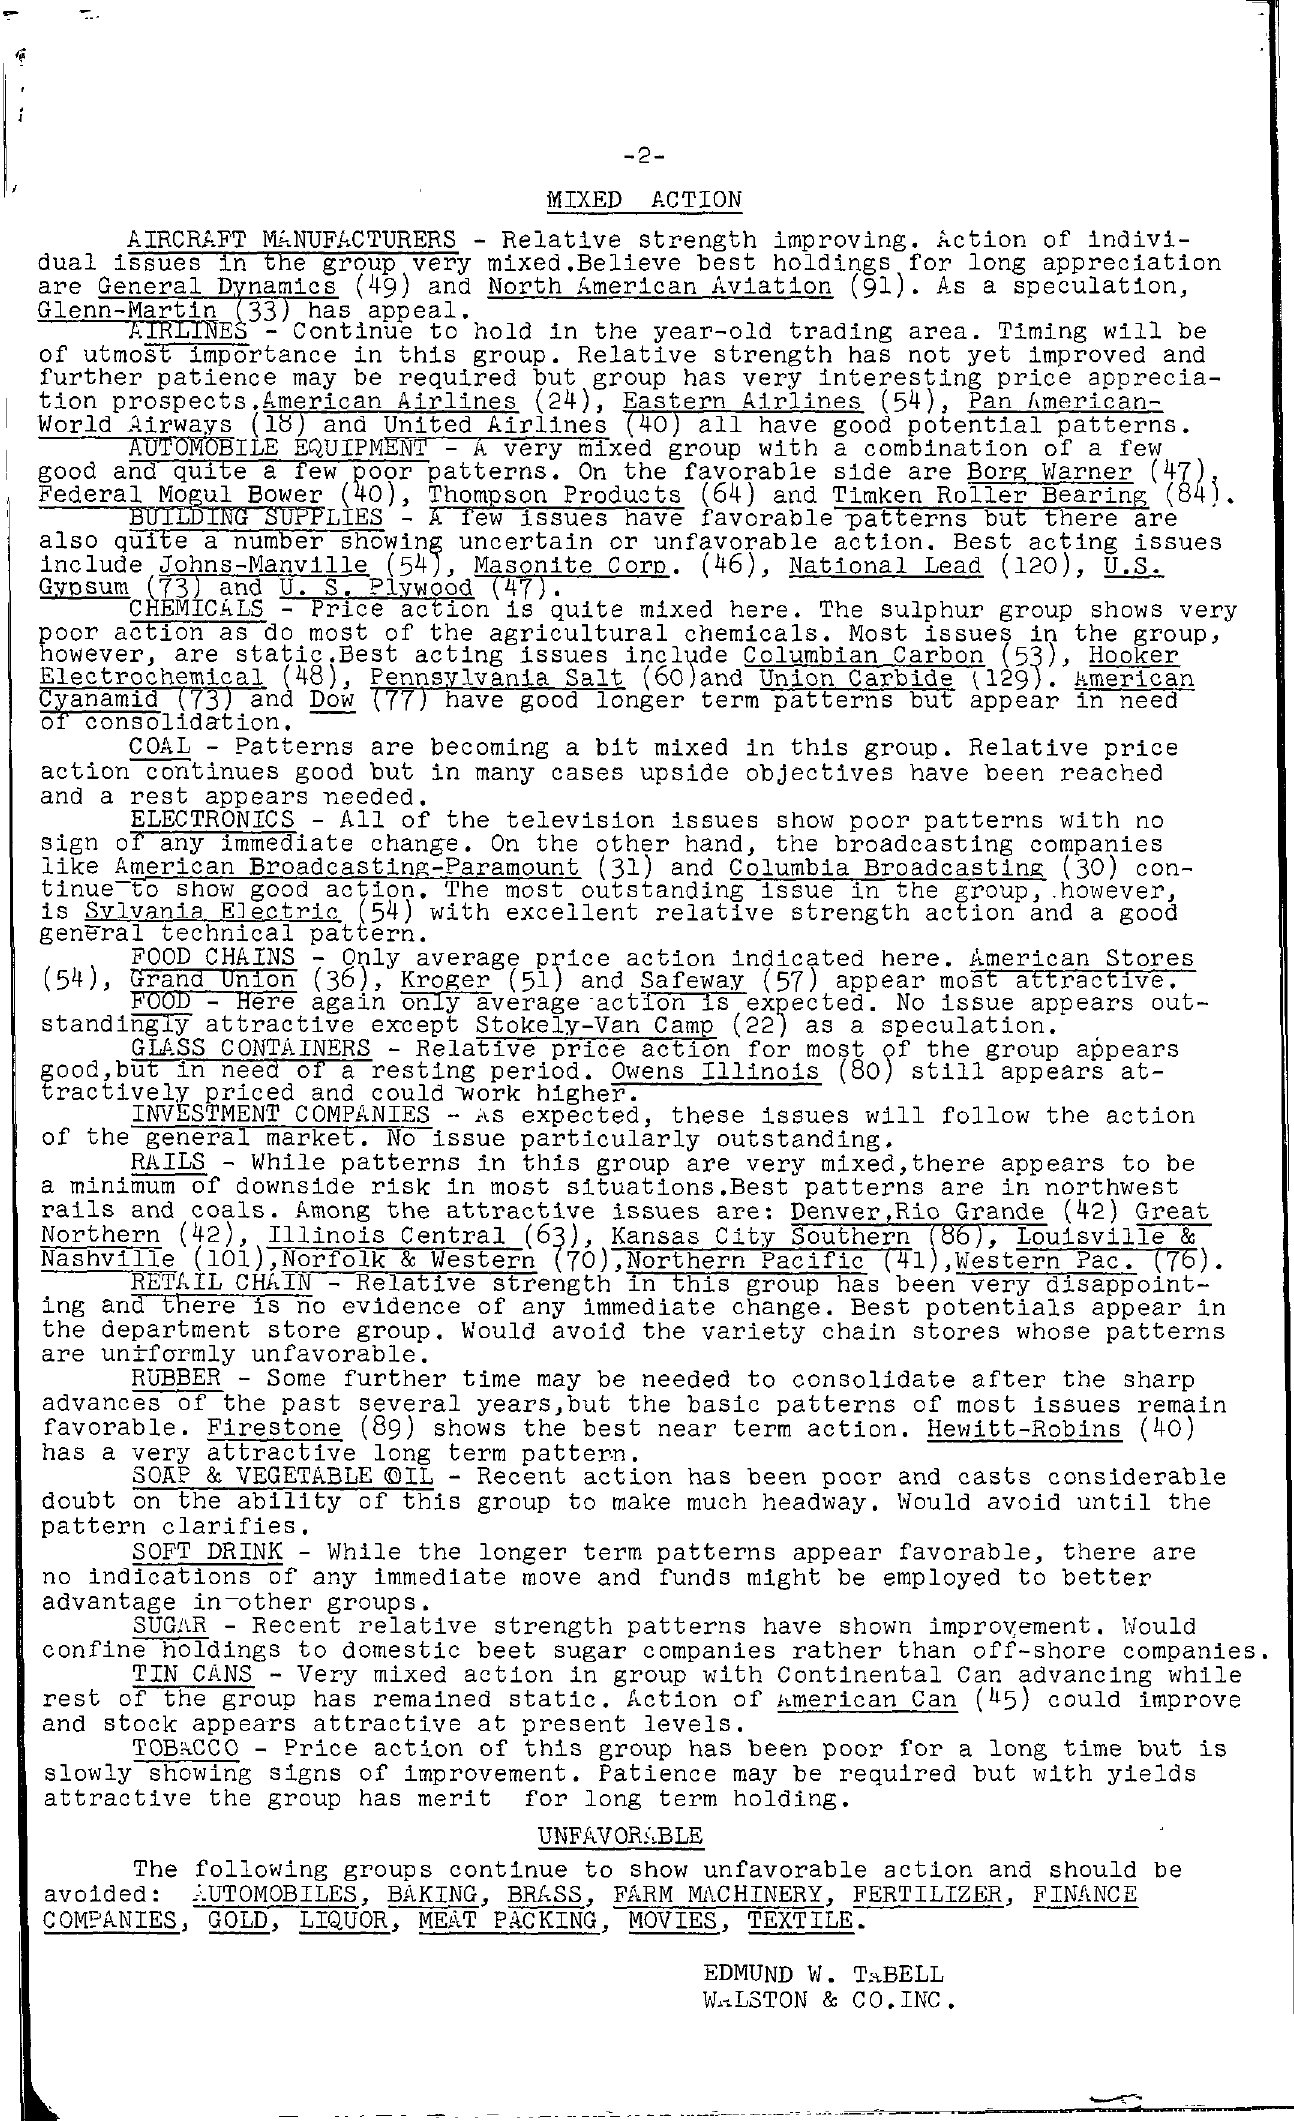 Tabell's Market Letter - August 15, 1956 page 2